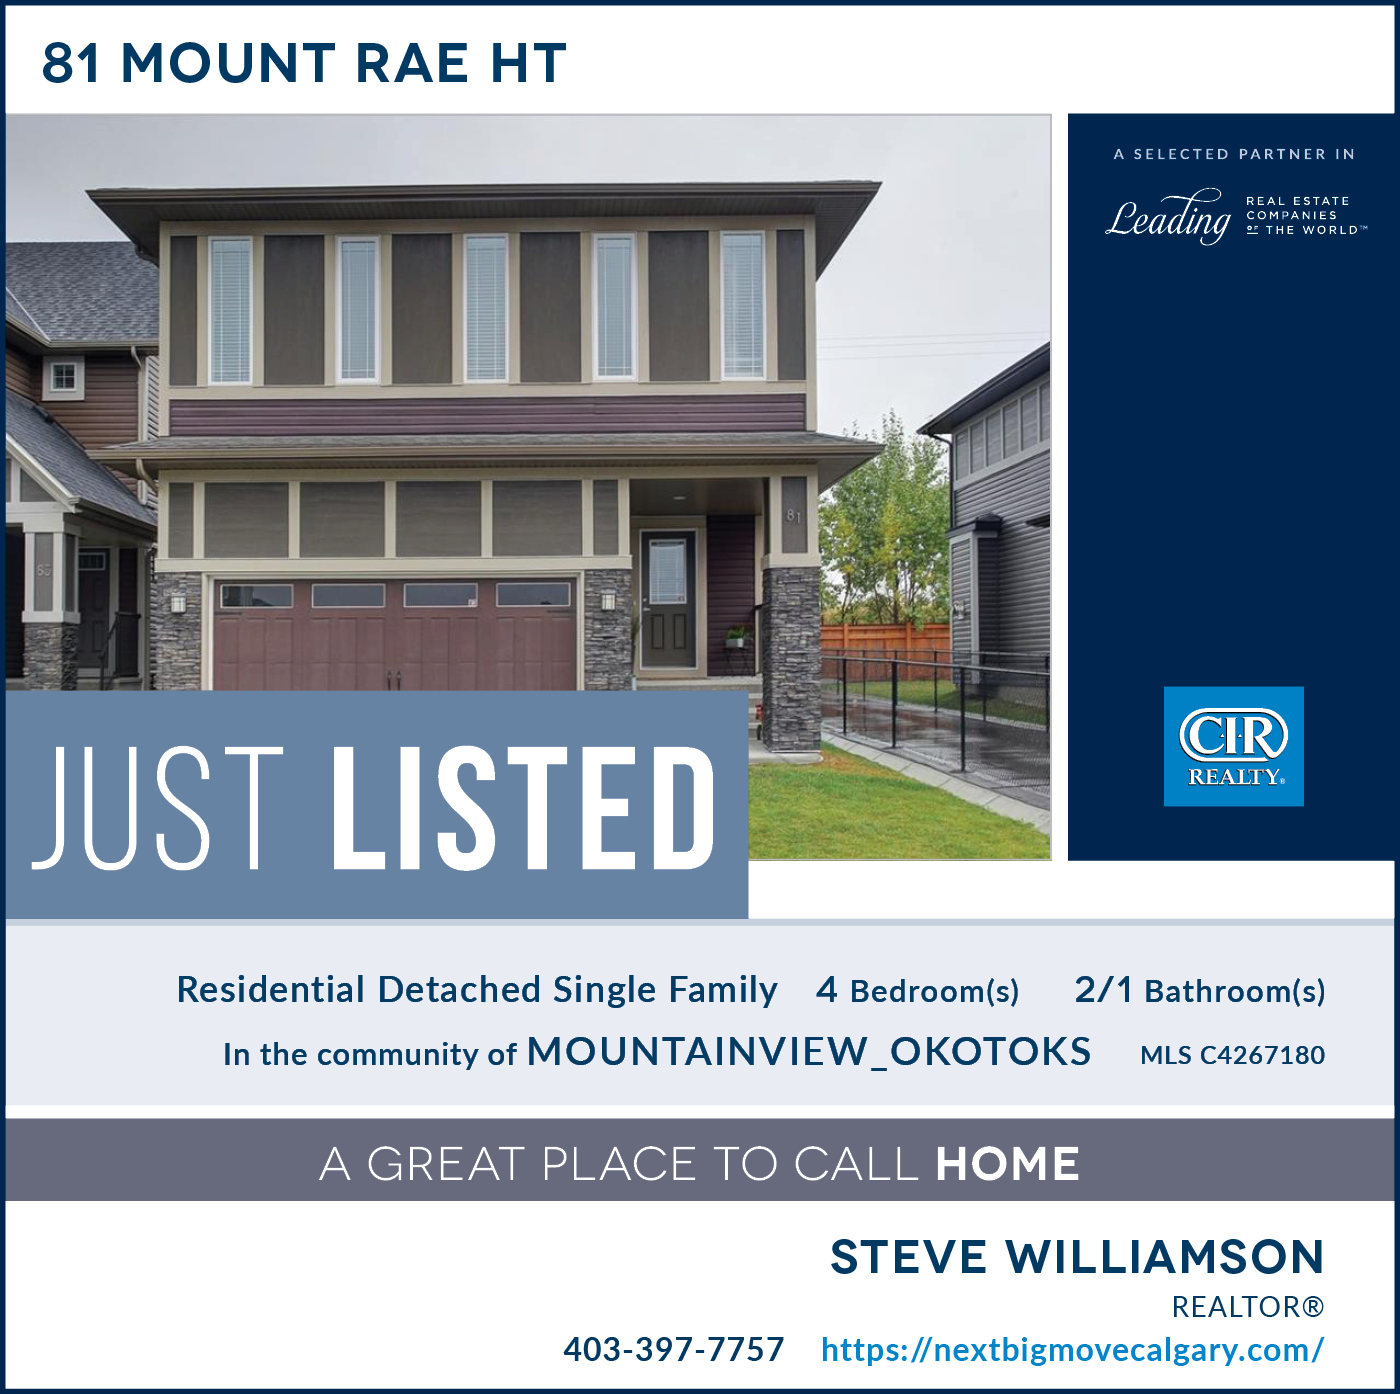 Just Listed - 81 Mt Rae Hgts Okotoks